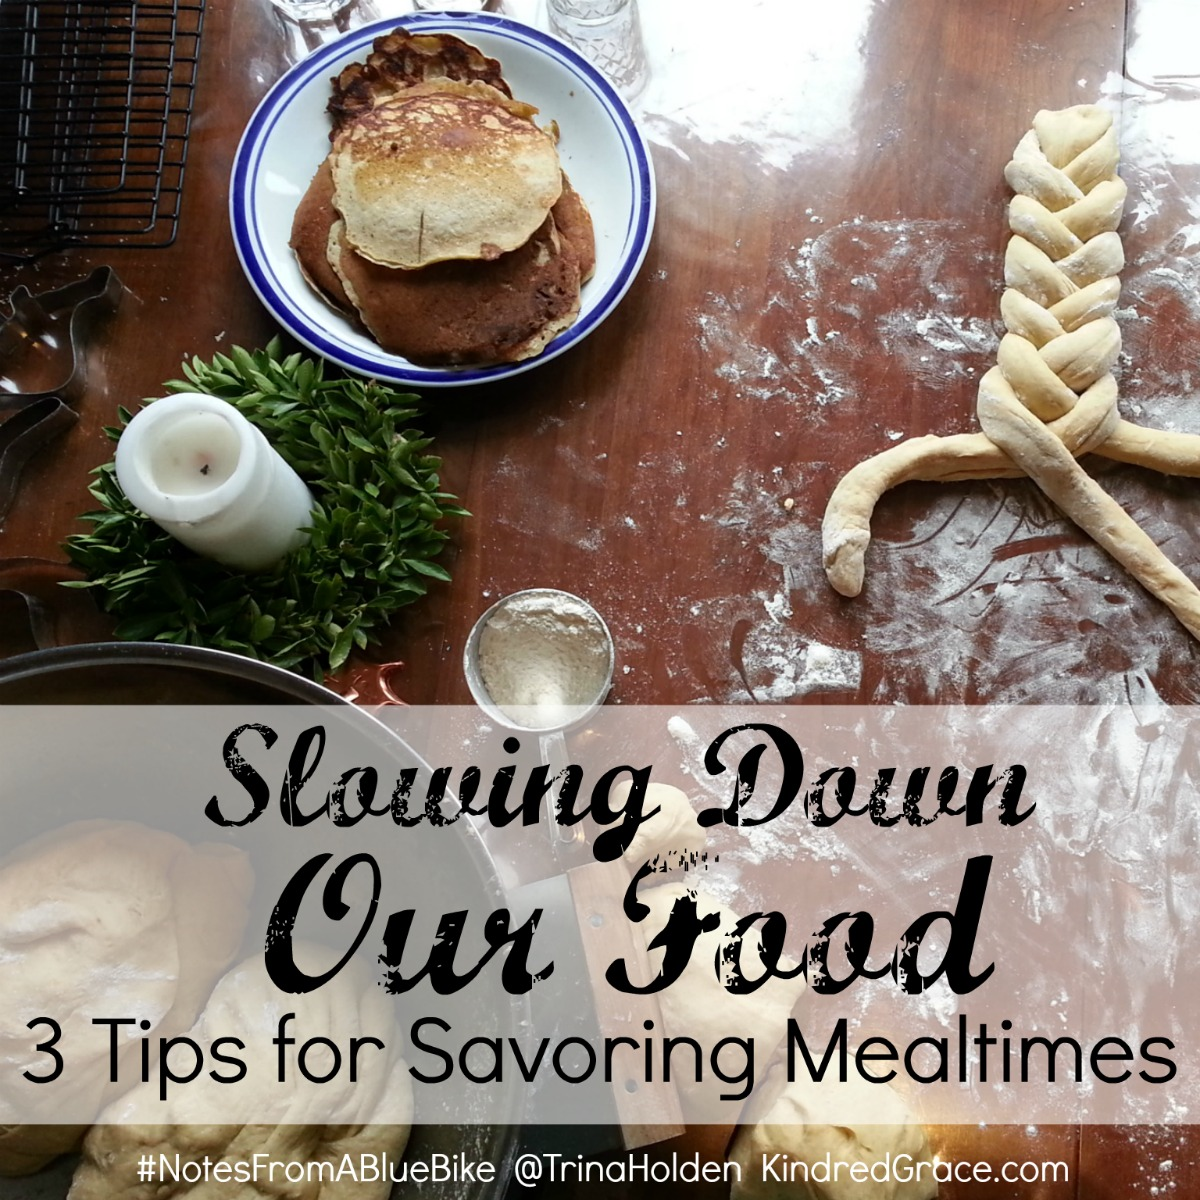 Slowing Down Our Food: 3 Tips for Savoring Mealtimes by @TrinaHolden at @KindredGrace #NotesFromABlueBike